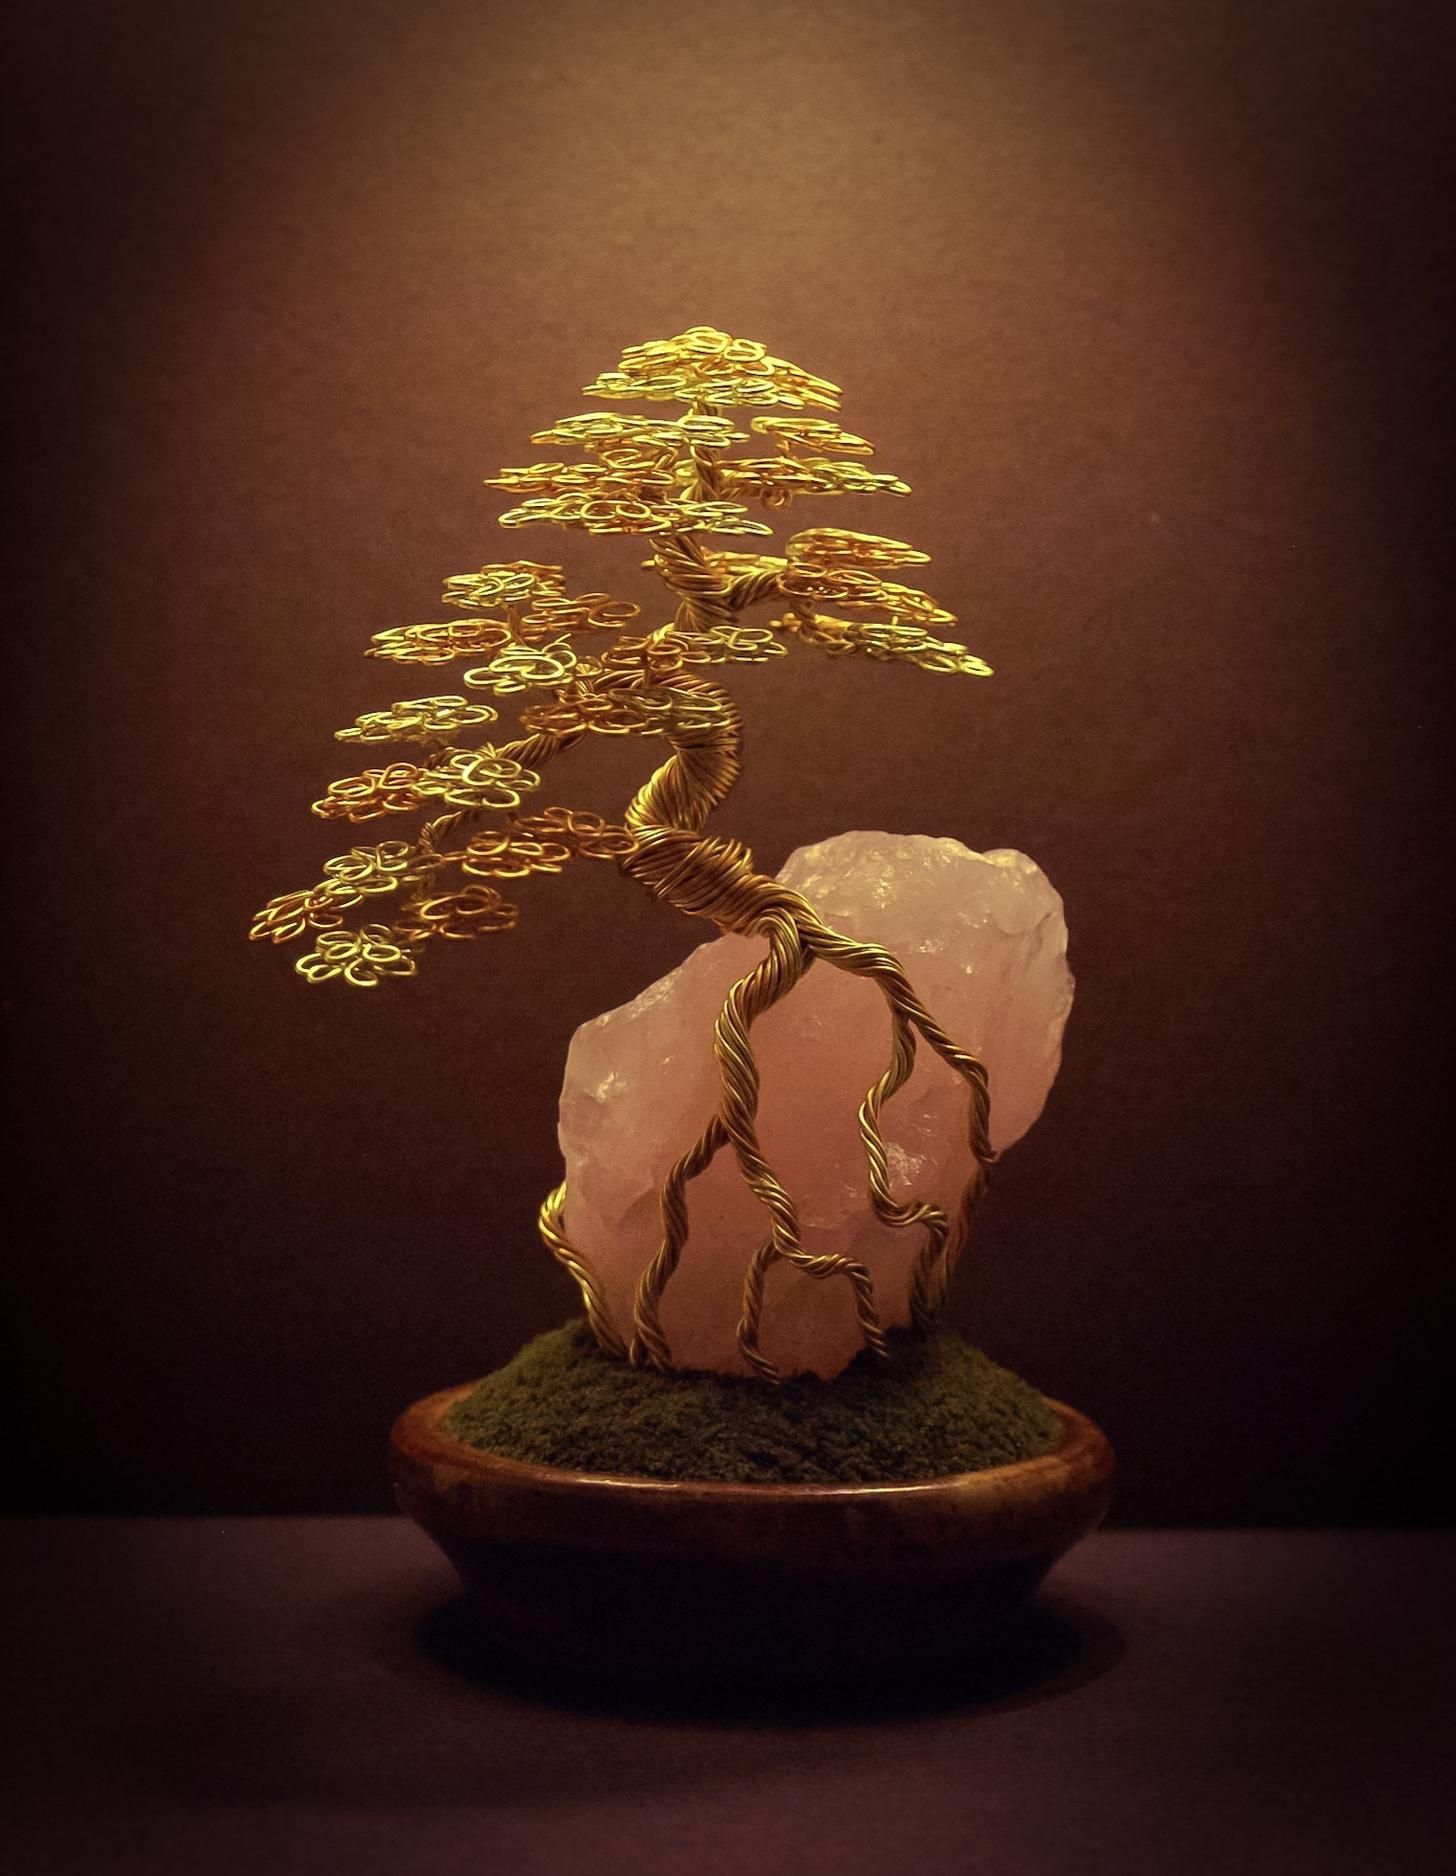 New Wire Bonsai Tree Sculptures Made By Steve Bowen Imgur Tree Sculpture Wire Trees Bonsai Tree